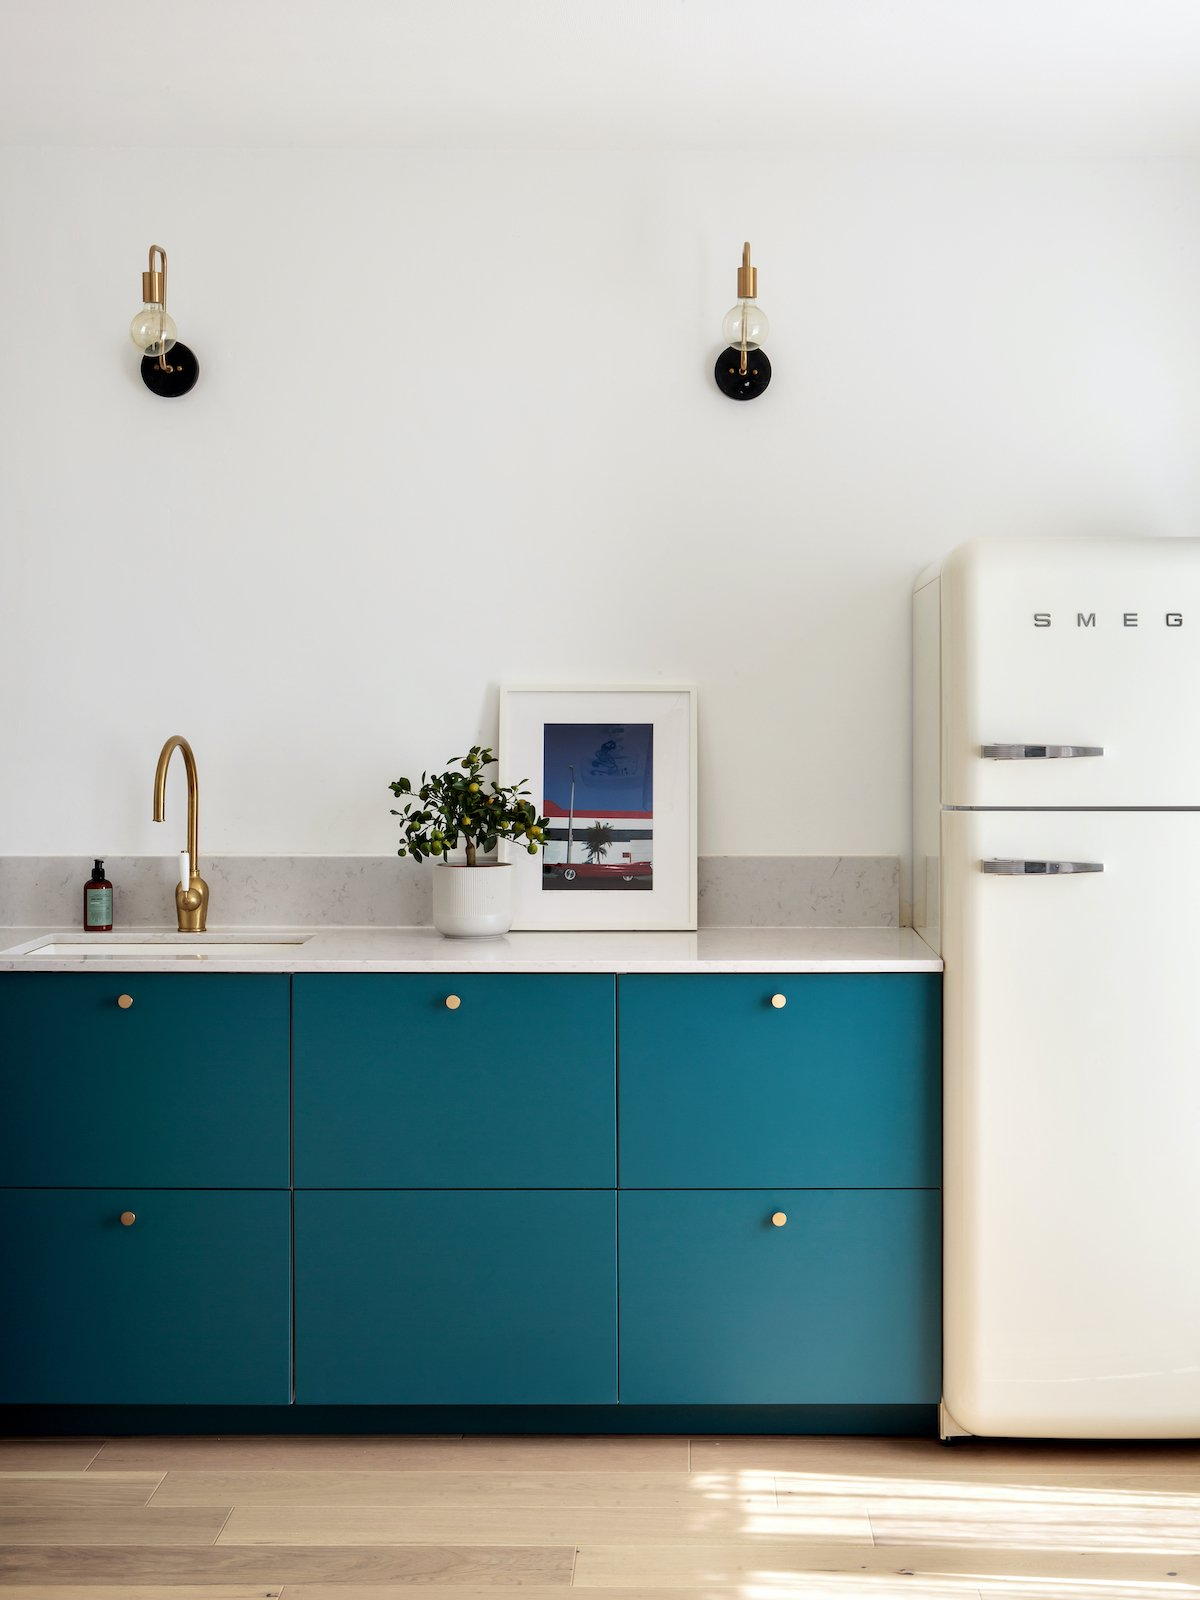 cuisine ikea hack bleu lagon marbre frigo smeg - blog décoration - clem around the corner